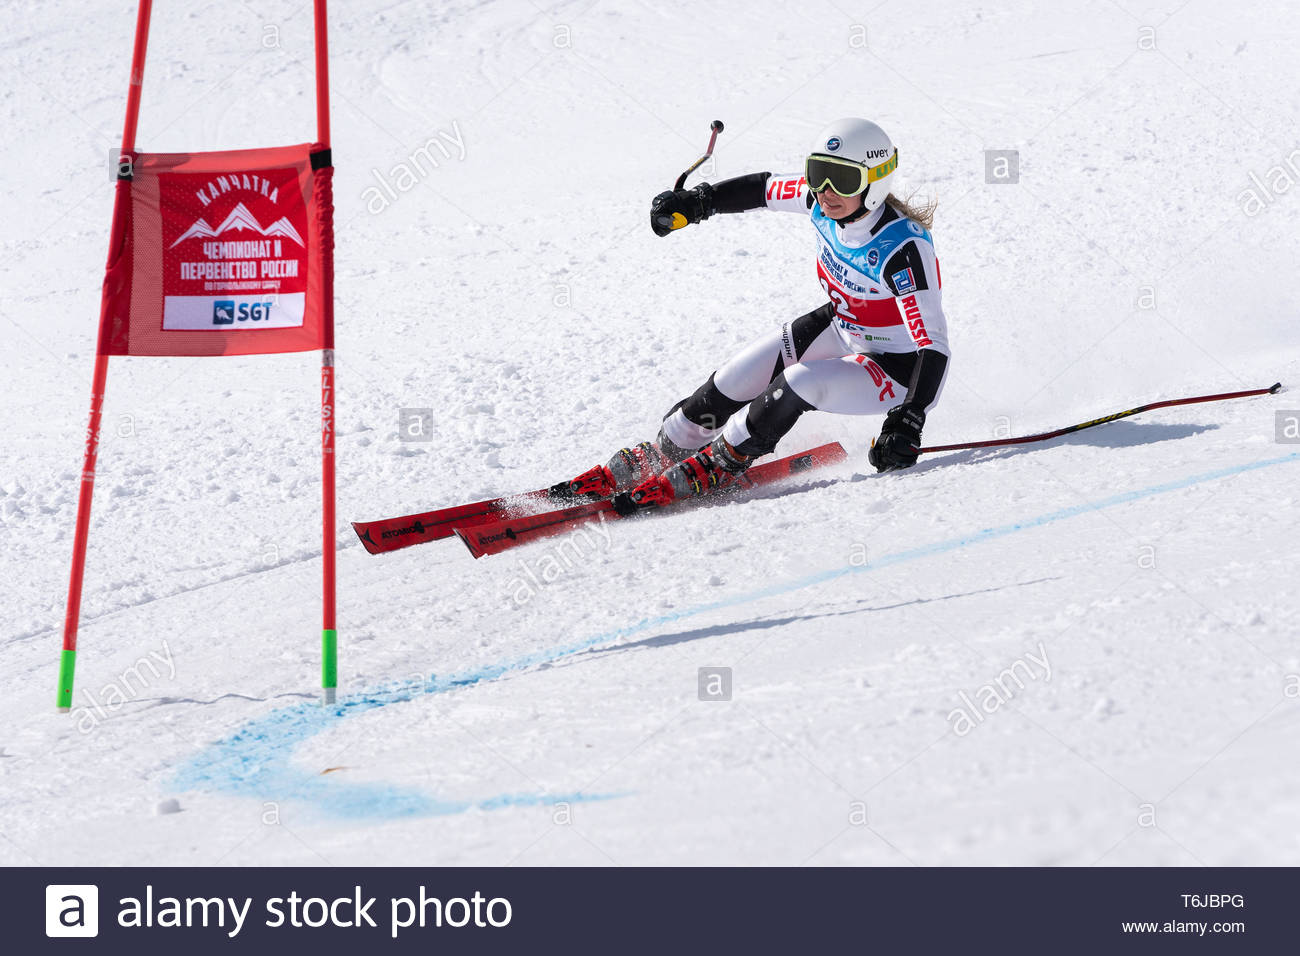 KAMCHATKA PENINSULA, RUSSIAN FEDERATION - APRIL 1, 2019: Mountain skier Kolomova Darya (Krasnoyarsk Region) skiing down snowy mountain slope. Russian  - Stock Image